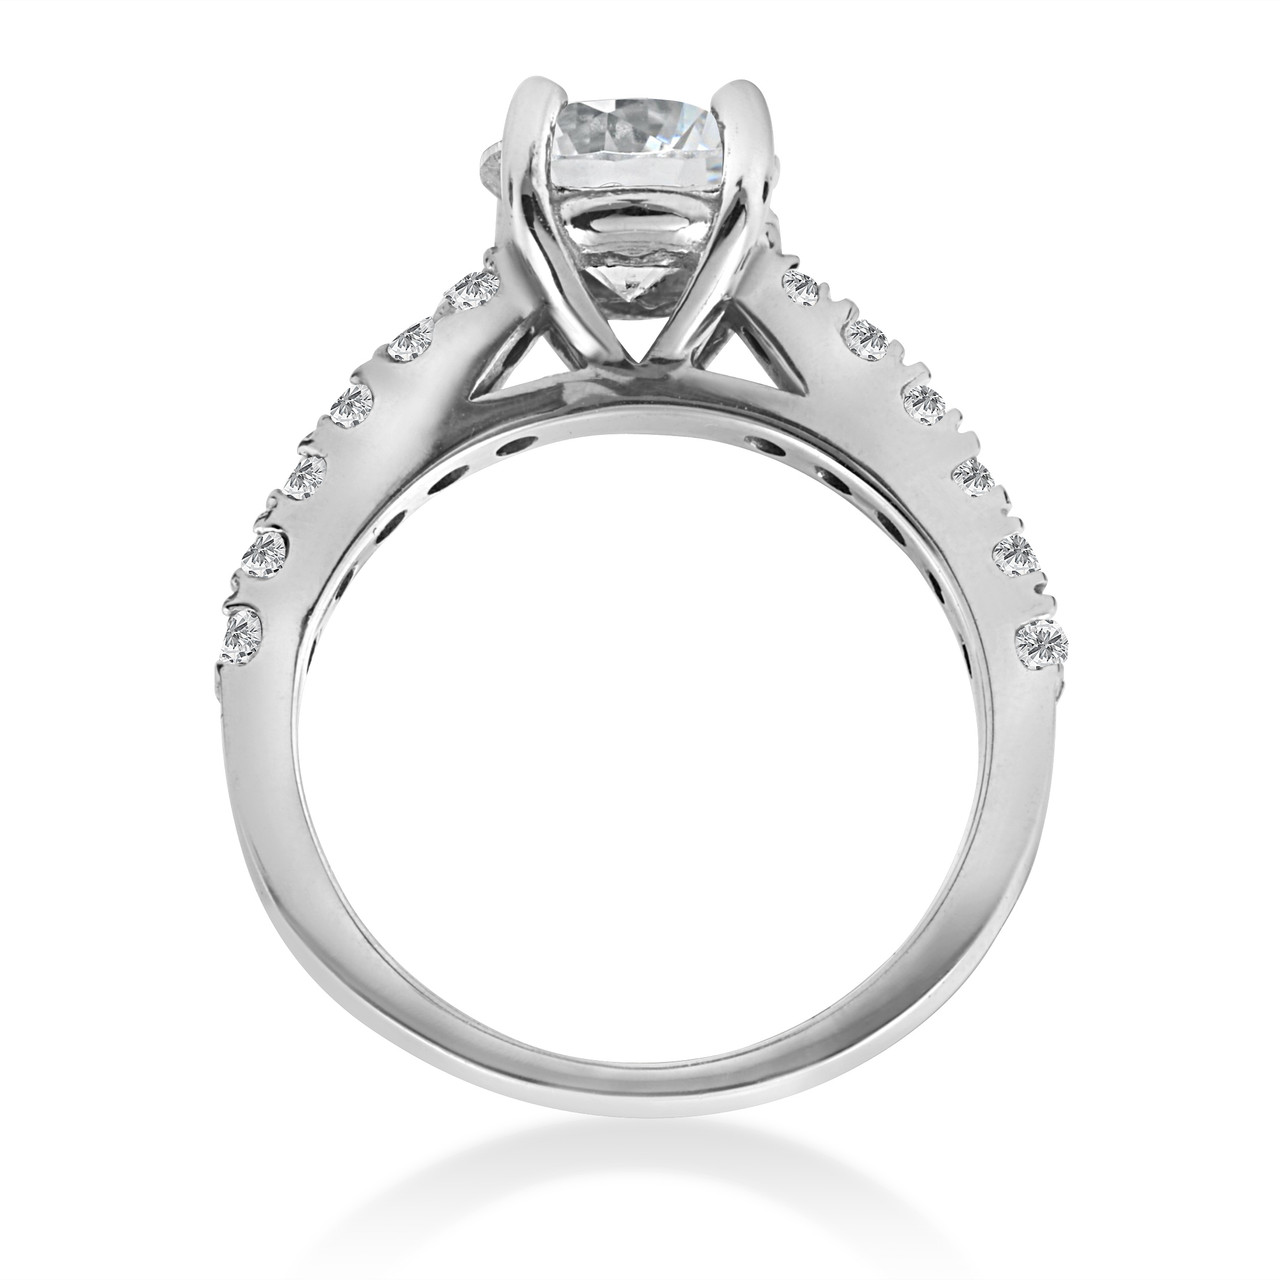 band off simulated diamond bands sona carat solitaire nscd engagement retail tradesy eternity set prong bride i ring